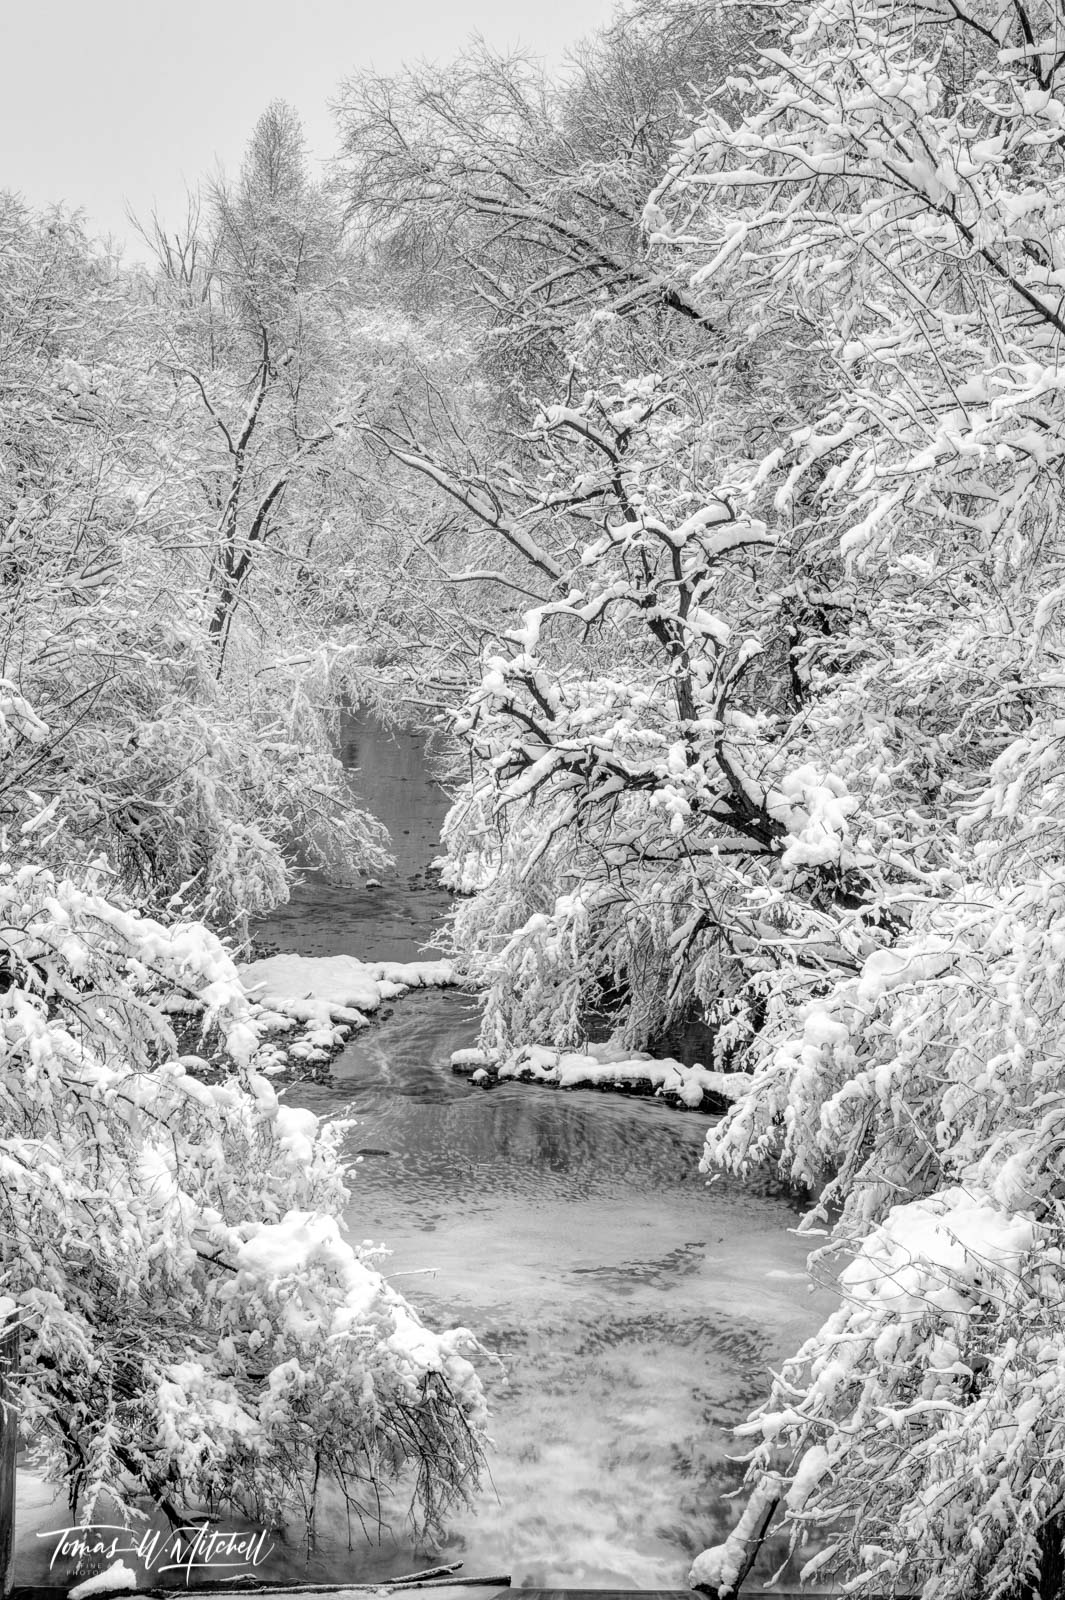 limited edition, fine art, prints, photograph, wheeler historic farm, utah, snowfall, snow, winter, trees, water, black and white, silent series, photo